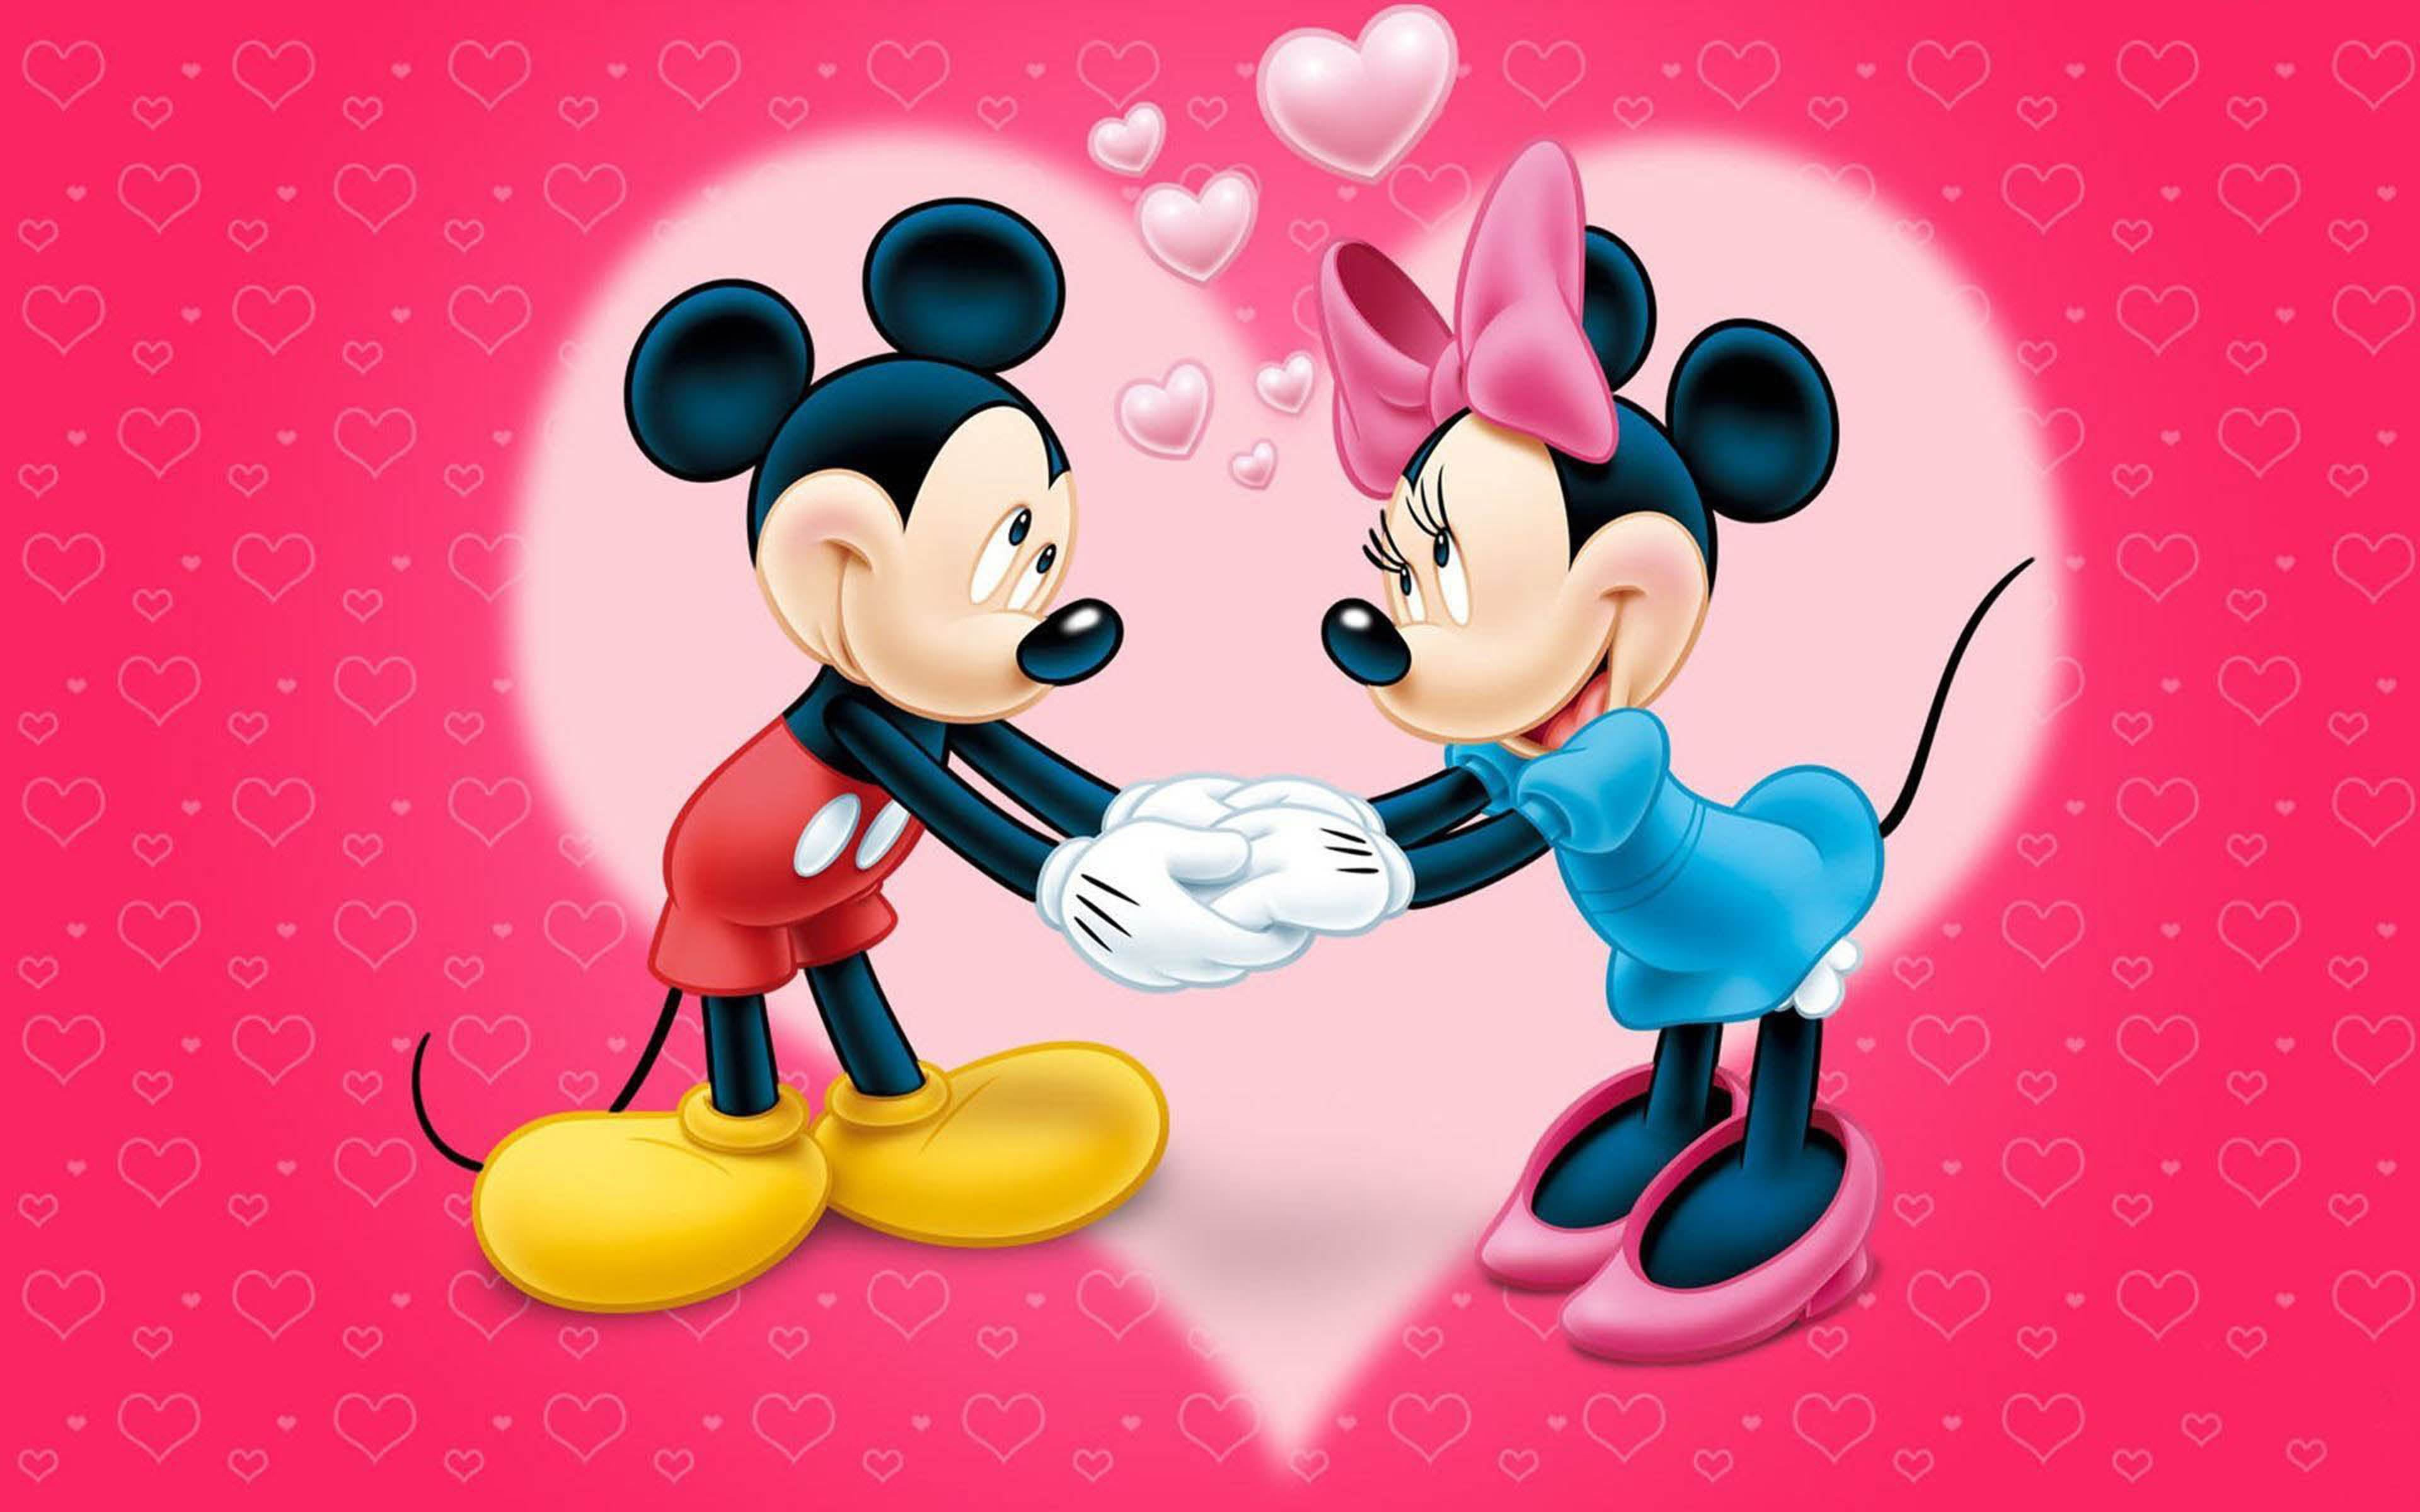 Mickey And Minnie Mouse Love Couple Cartoon Red Wallpaper With Hearts Hd Wallpaper For Desktop Mobile And Mickey Mouse Wallpaper Iphone Cartoon Mobile Cartoon